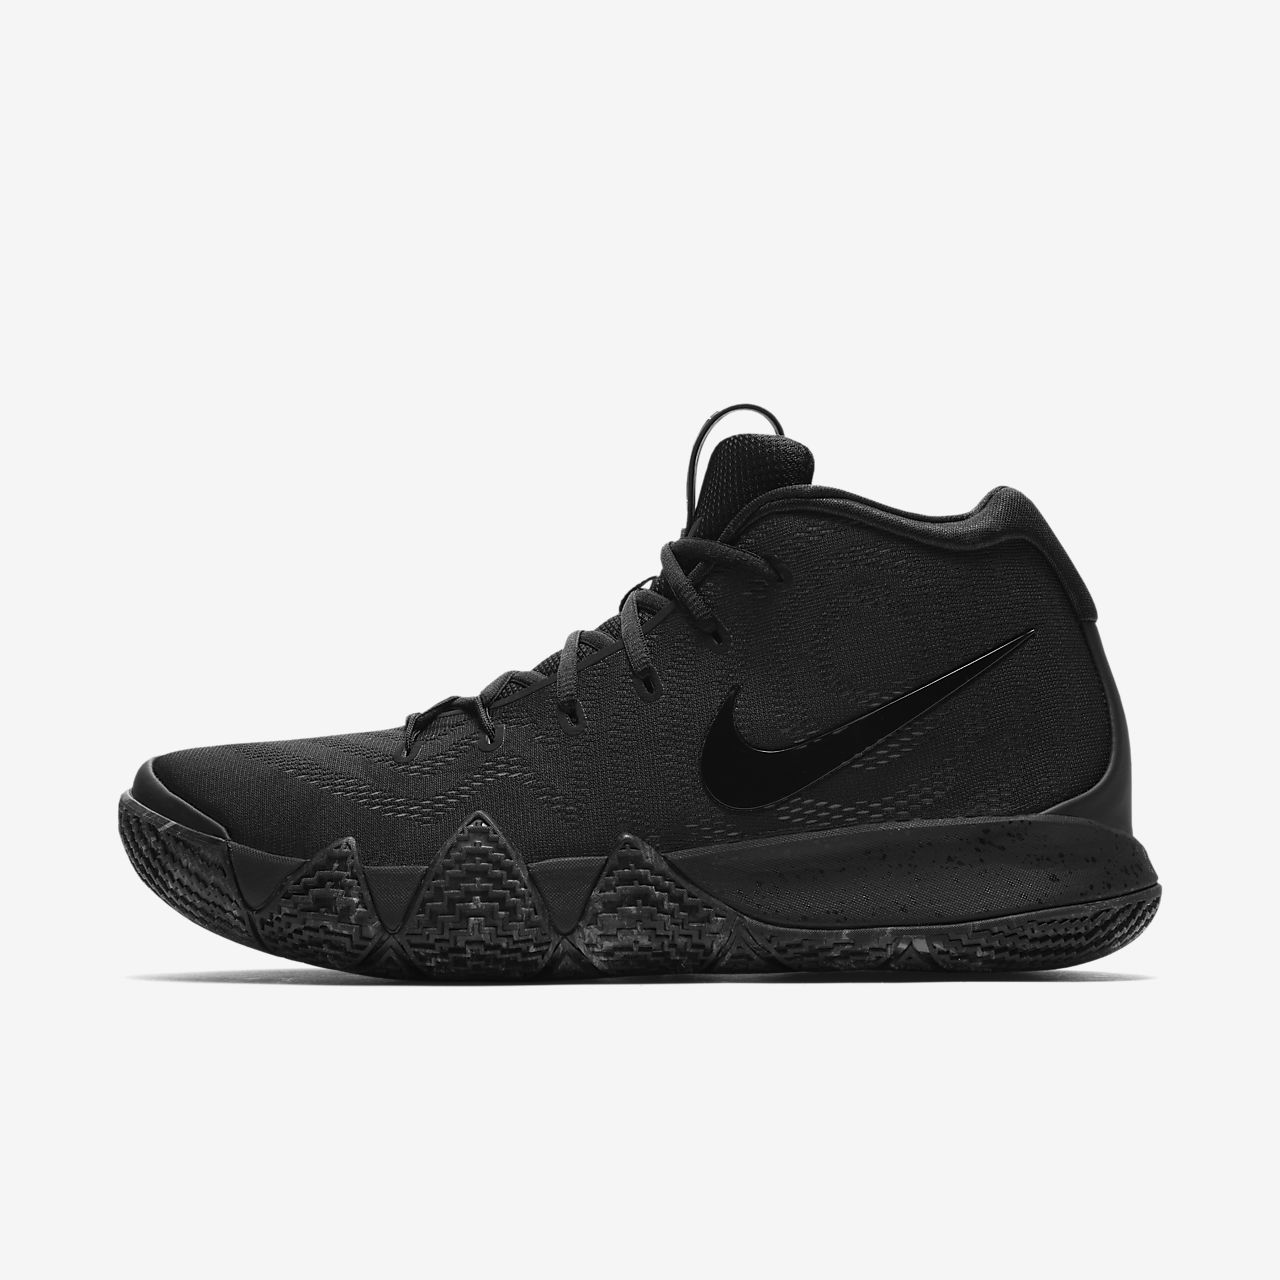 size 40 d8300 e0382 Low Resolution Chaussure de basketball Kyrie 4 Chaussure de basketball  Kyrie 4